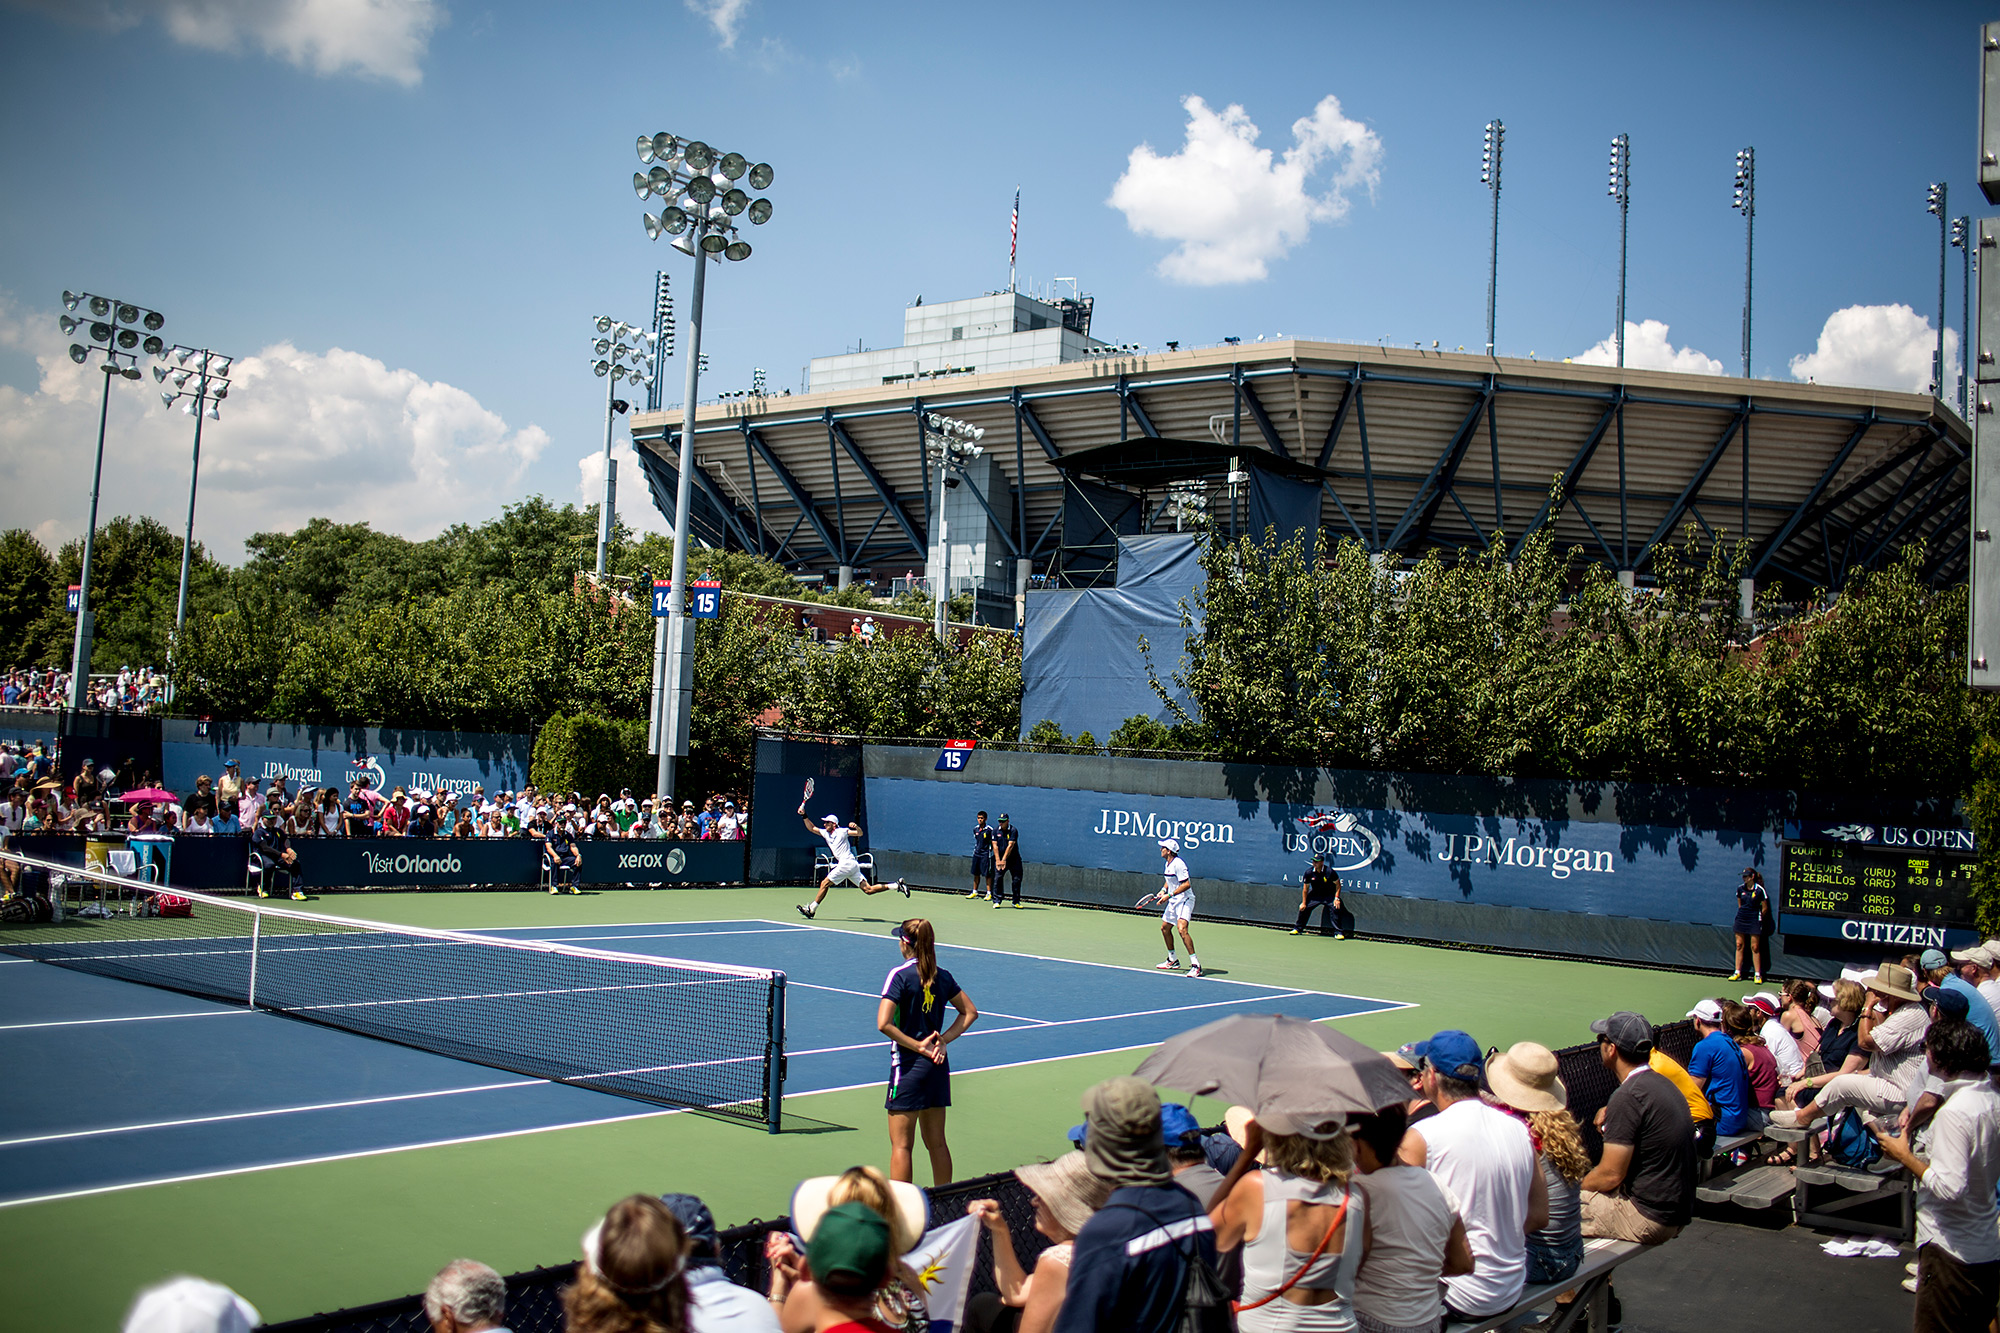 Second up on Court 15 was a men's doubles match. Carlos Berlocq and Leonardo Mayer of Argentina faced Pablo Cuevas of Uruguay and Horacio Zeballos of Argentina in the shadows of Arthur Ashe.